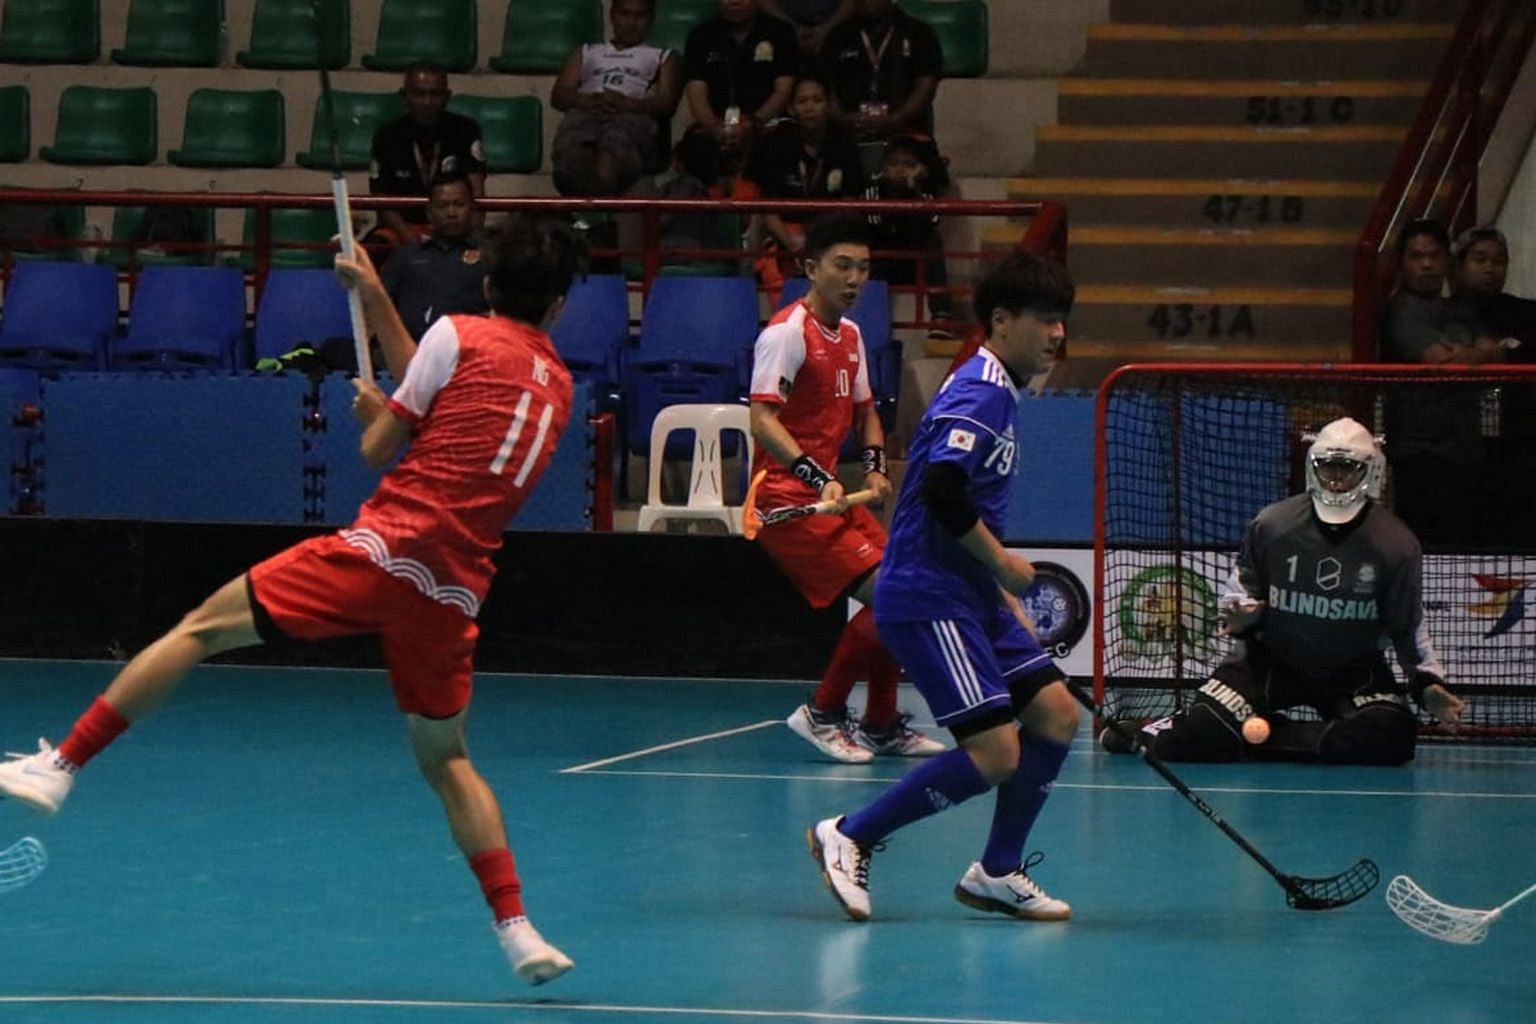 Singapore's Ng Juin Jie (No. 11) taking a shot against South Korea in the semi-finals of the men's Asia Oceania Floorball Confederation Cup in Binan, Philippines yesterday. The Republic won 13-1 to progress to today's final with Thailand, who beat th